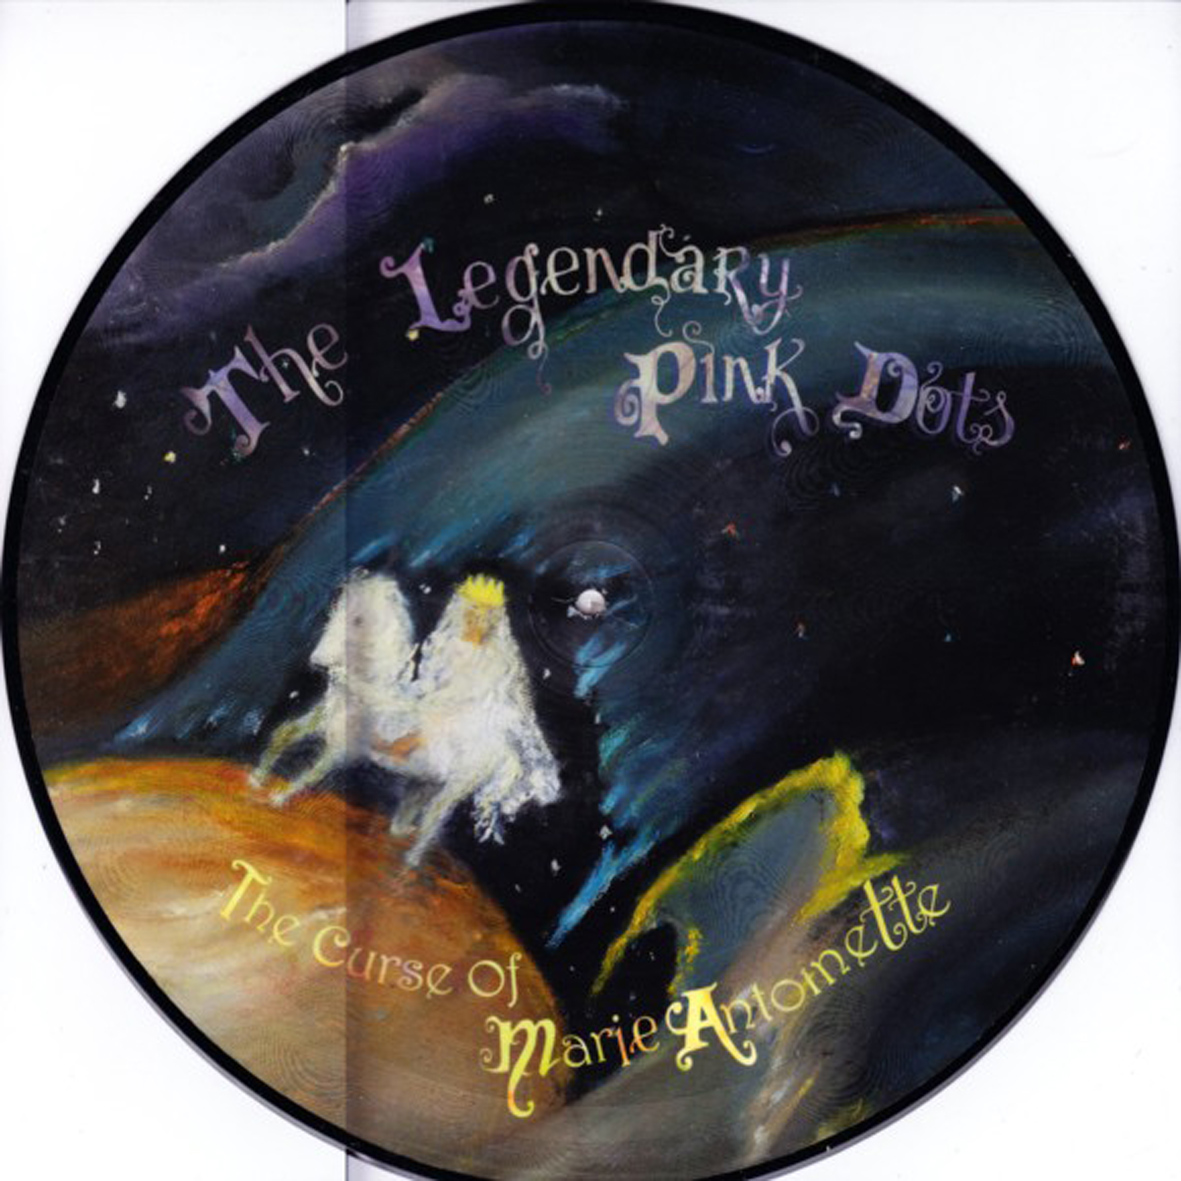 The Legendary Pink Dots - Rainbows Too